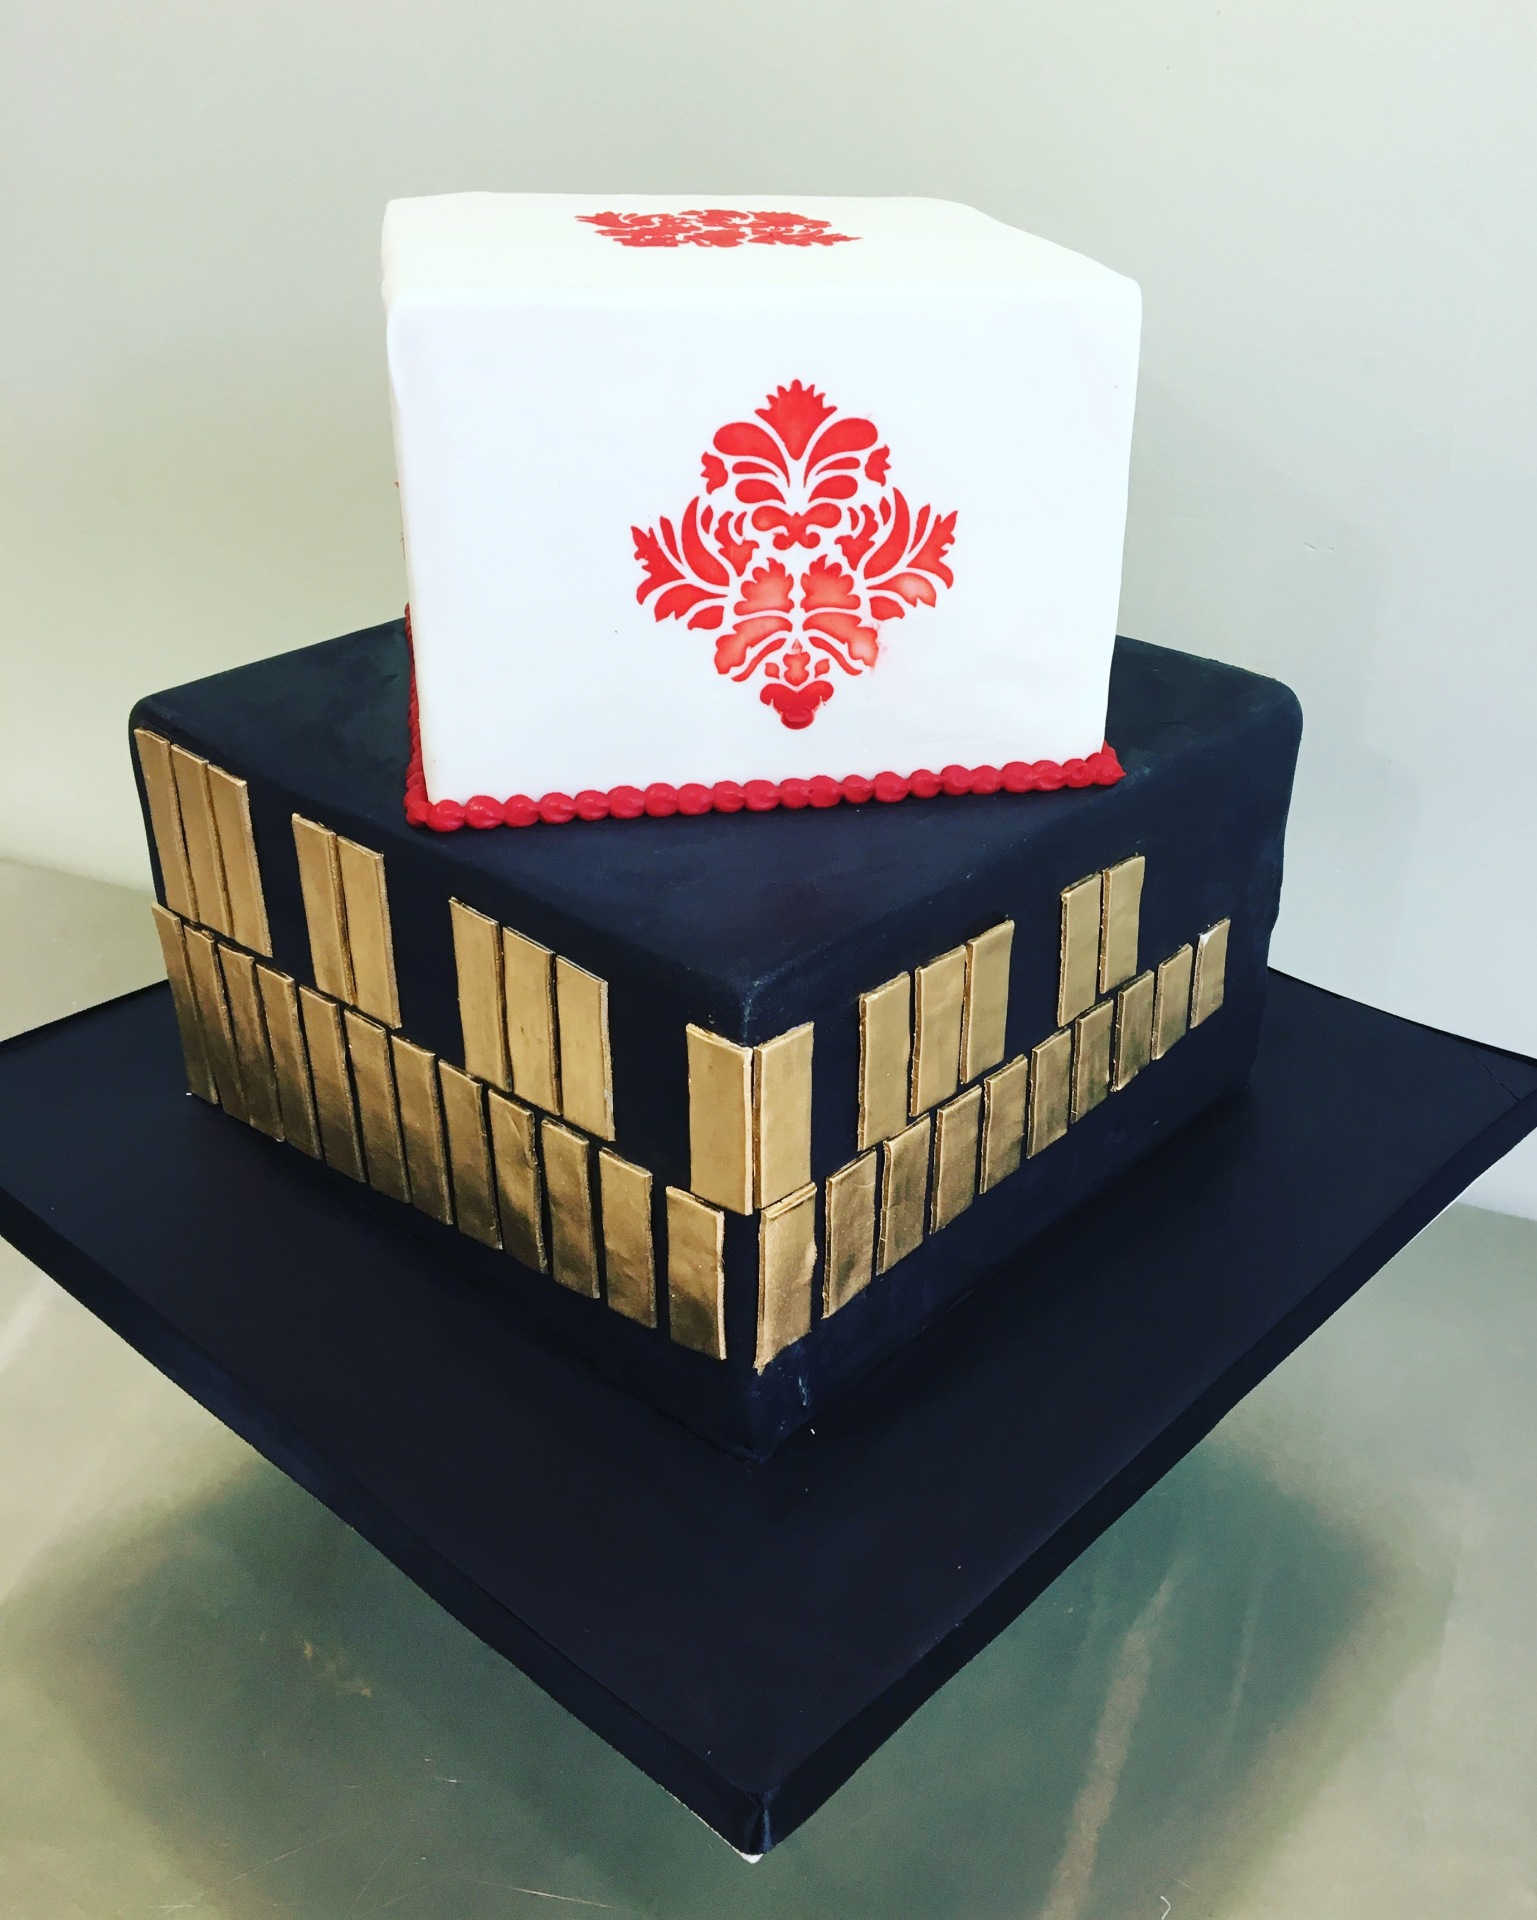 vibraphone wedding cake square cake damask pattern cake